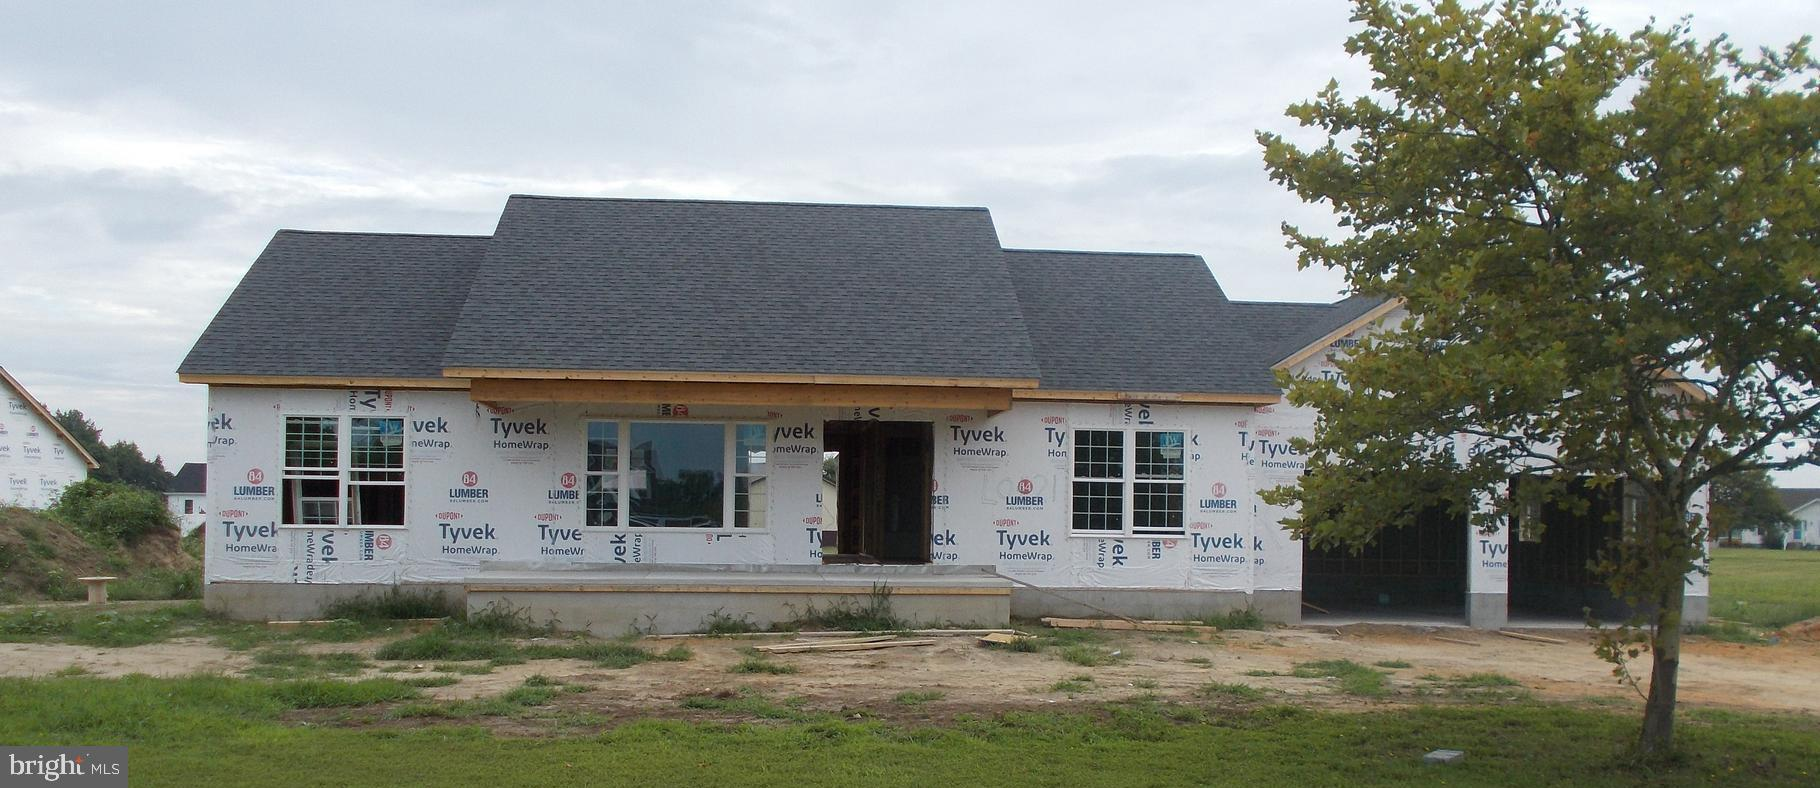 New construction - be in your own brand new home by Christmas!! Quality, stick built home featuring 3BR, 2 baths, granite kitchen counter tops, island, separate laundry, and an attached garage.  Still time to choose your own colors.  Efficient heat pump (gas/electric) with in demand hot water heater.  Fully conditioned crawl space. Warwick School District.